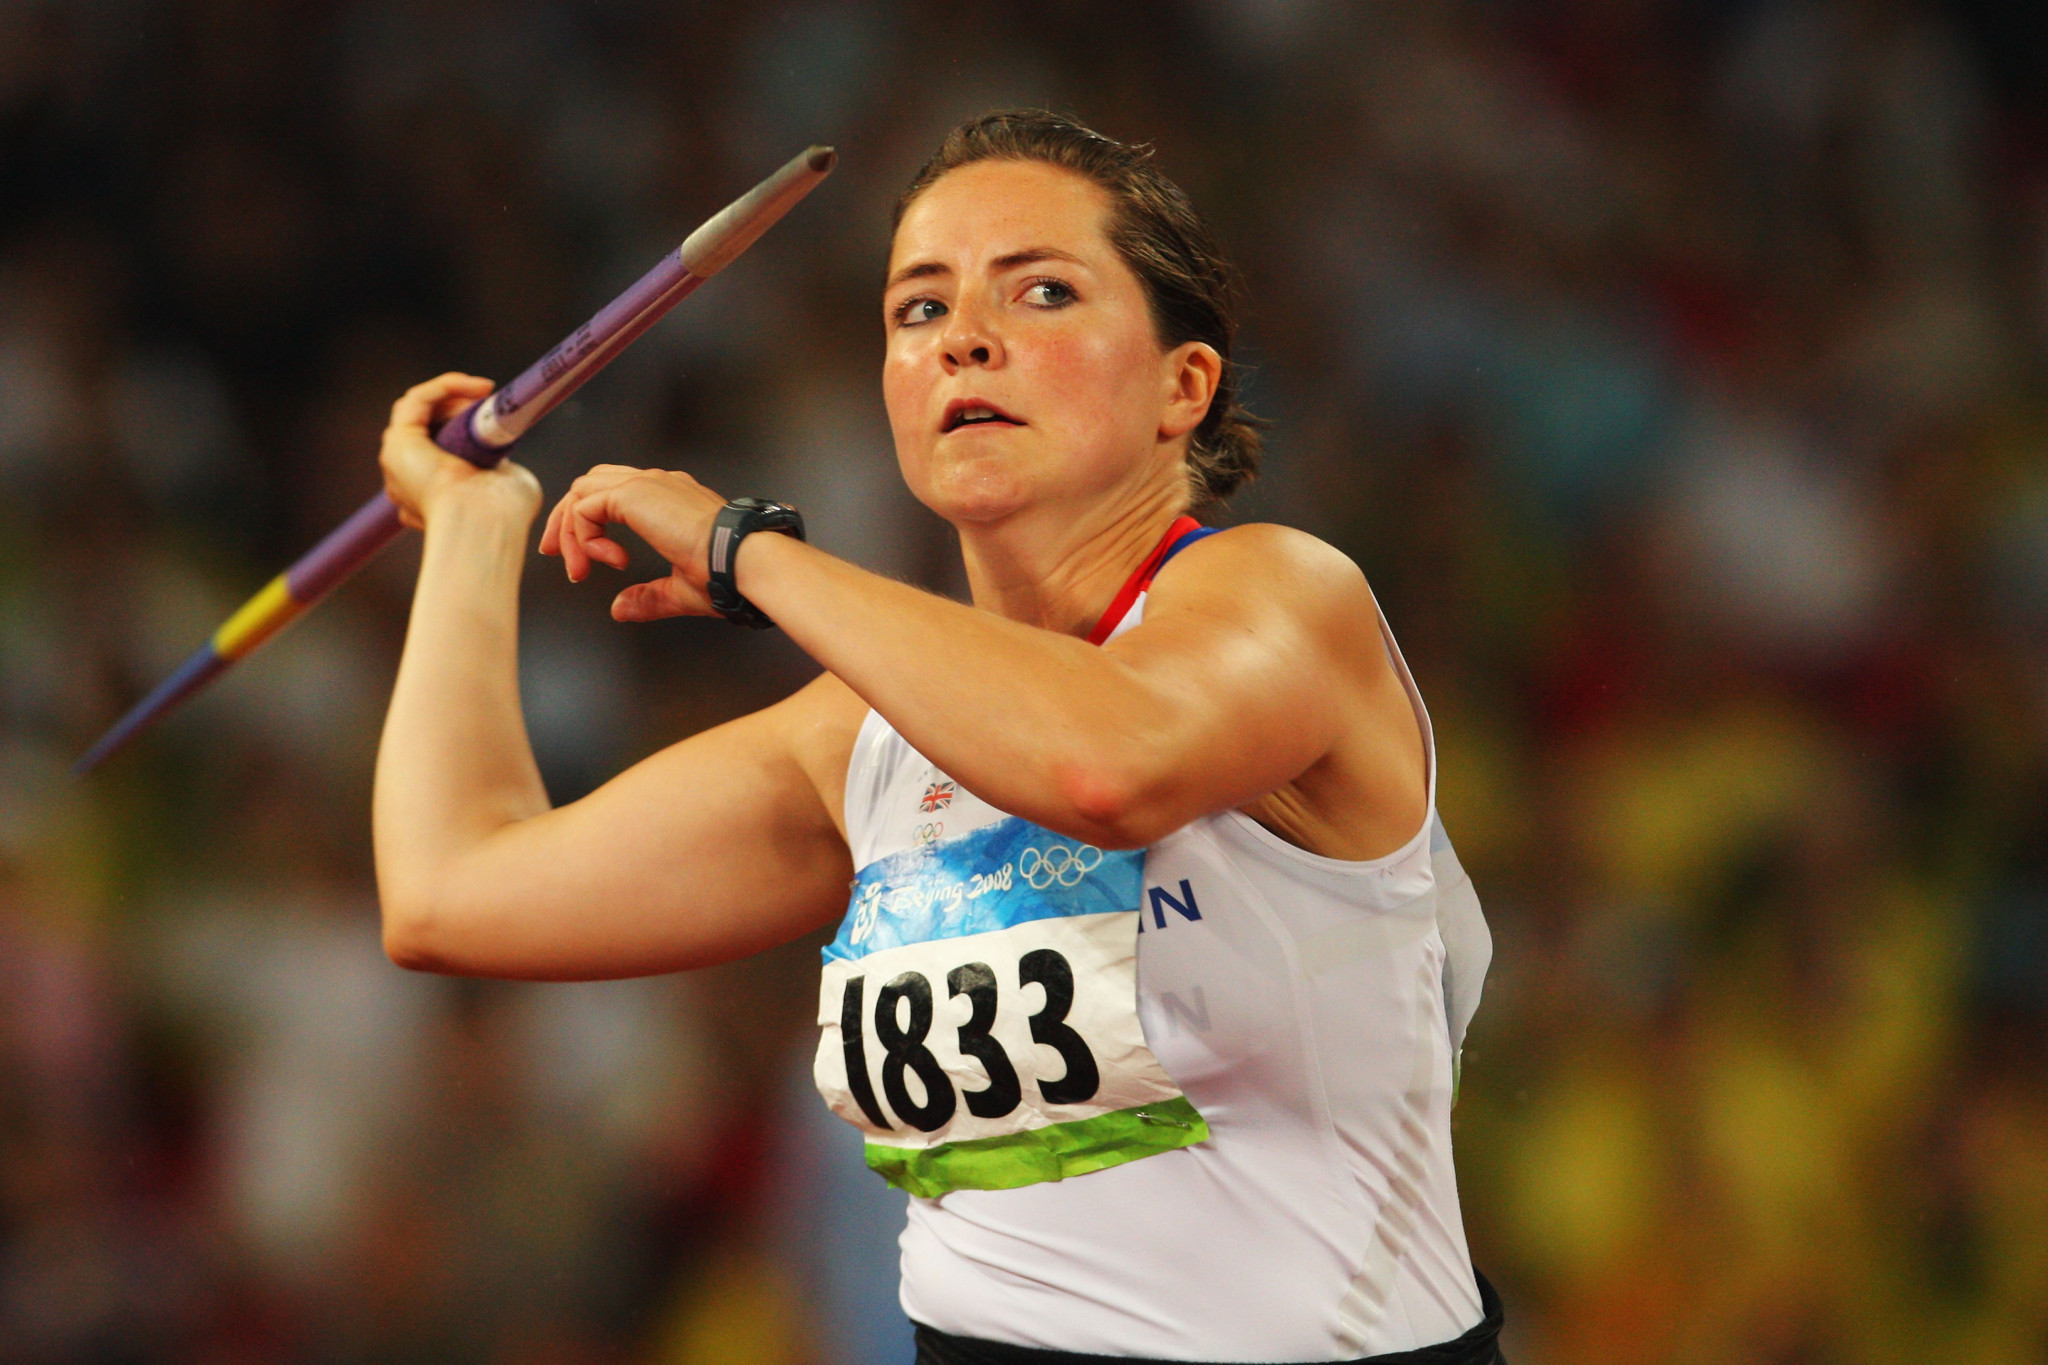 British javelin thrower to receive Beijing 2008 bronze medal at Anniversary Games in London